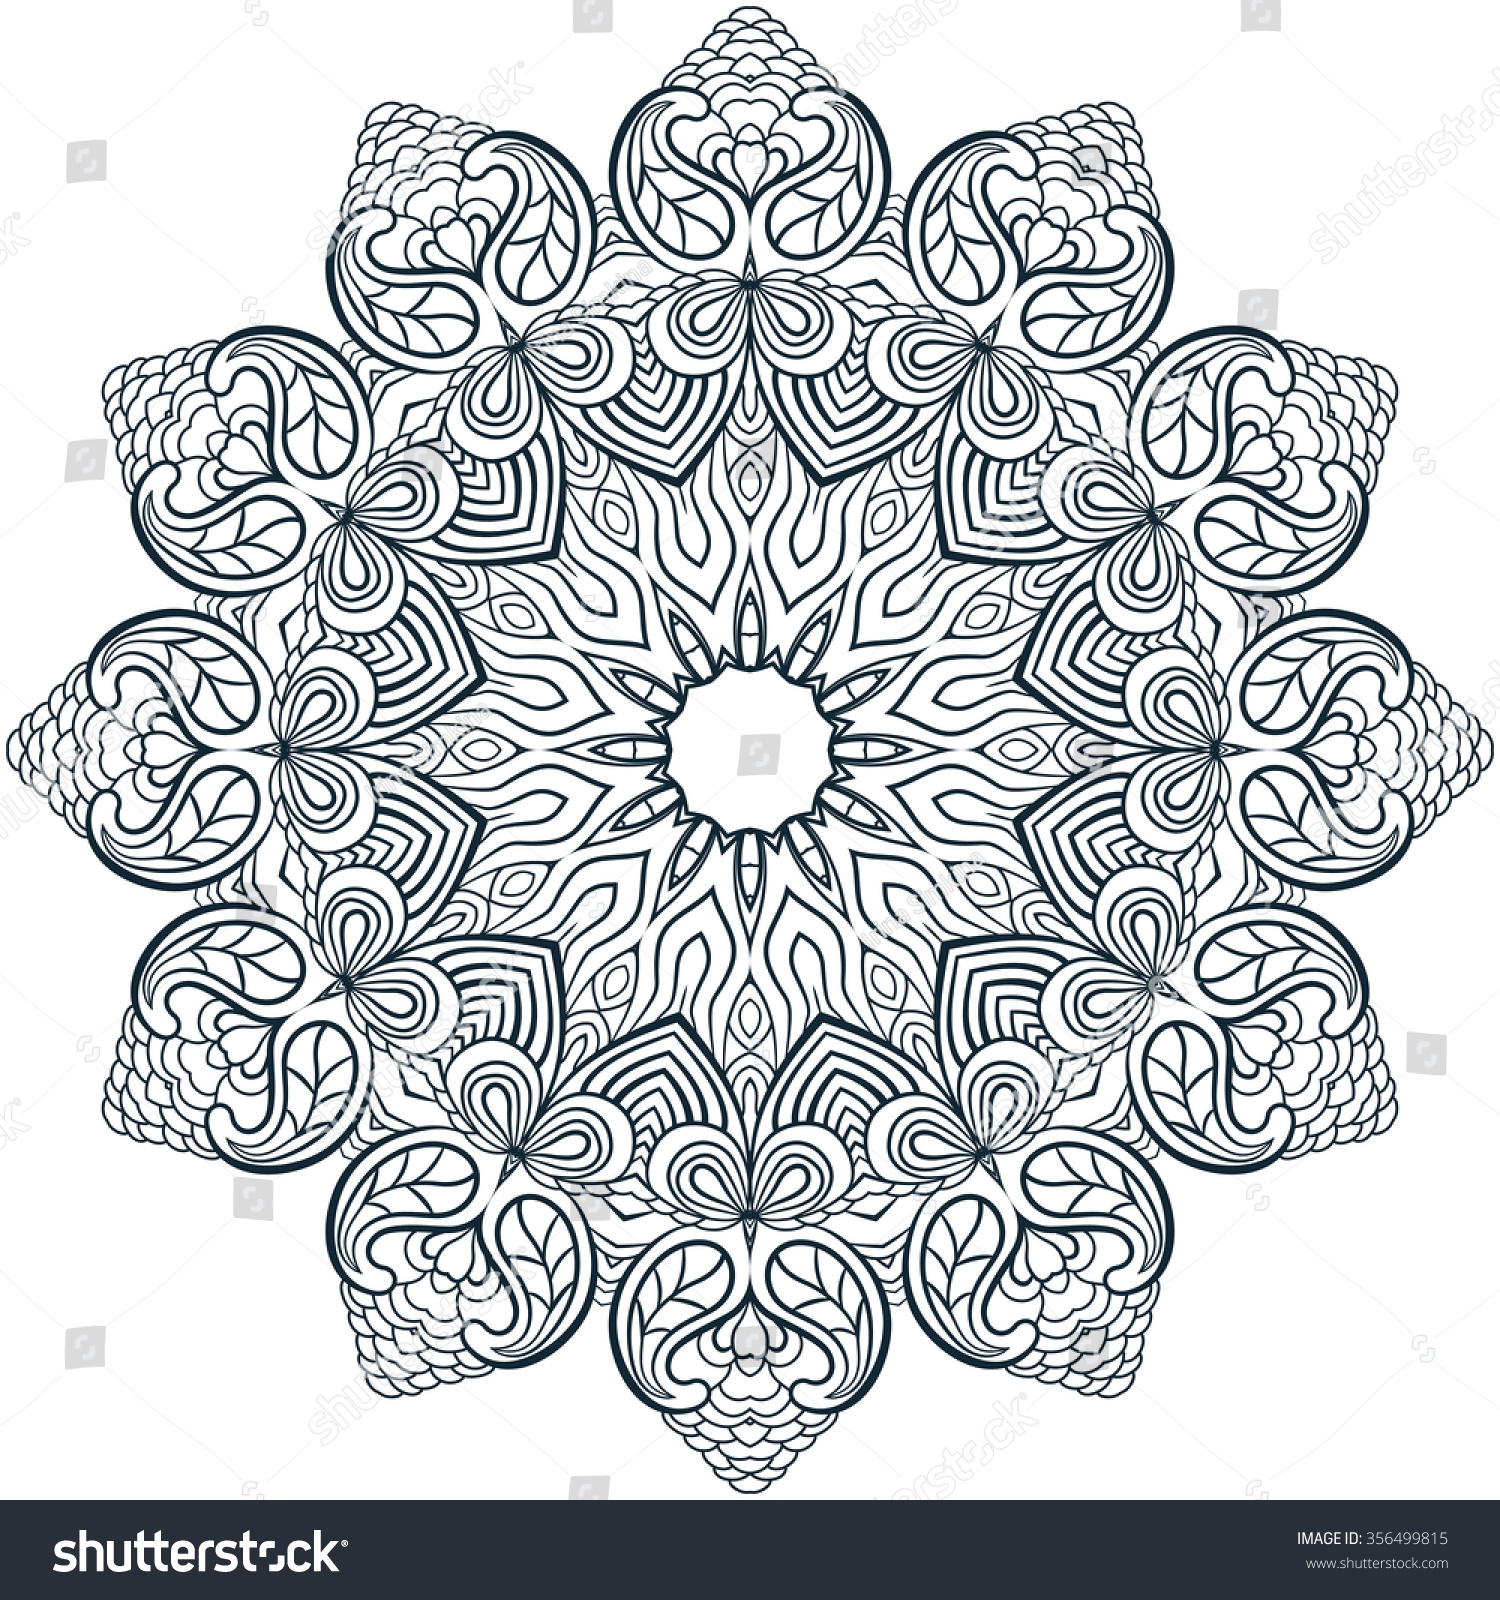 henna coloring pages - stock vector mandala coloring illustration coloring book for adult and older children coloring page with